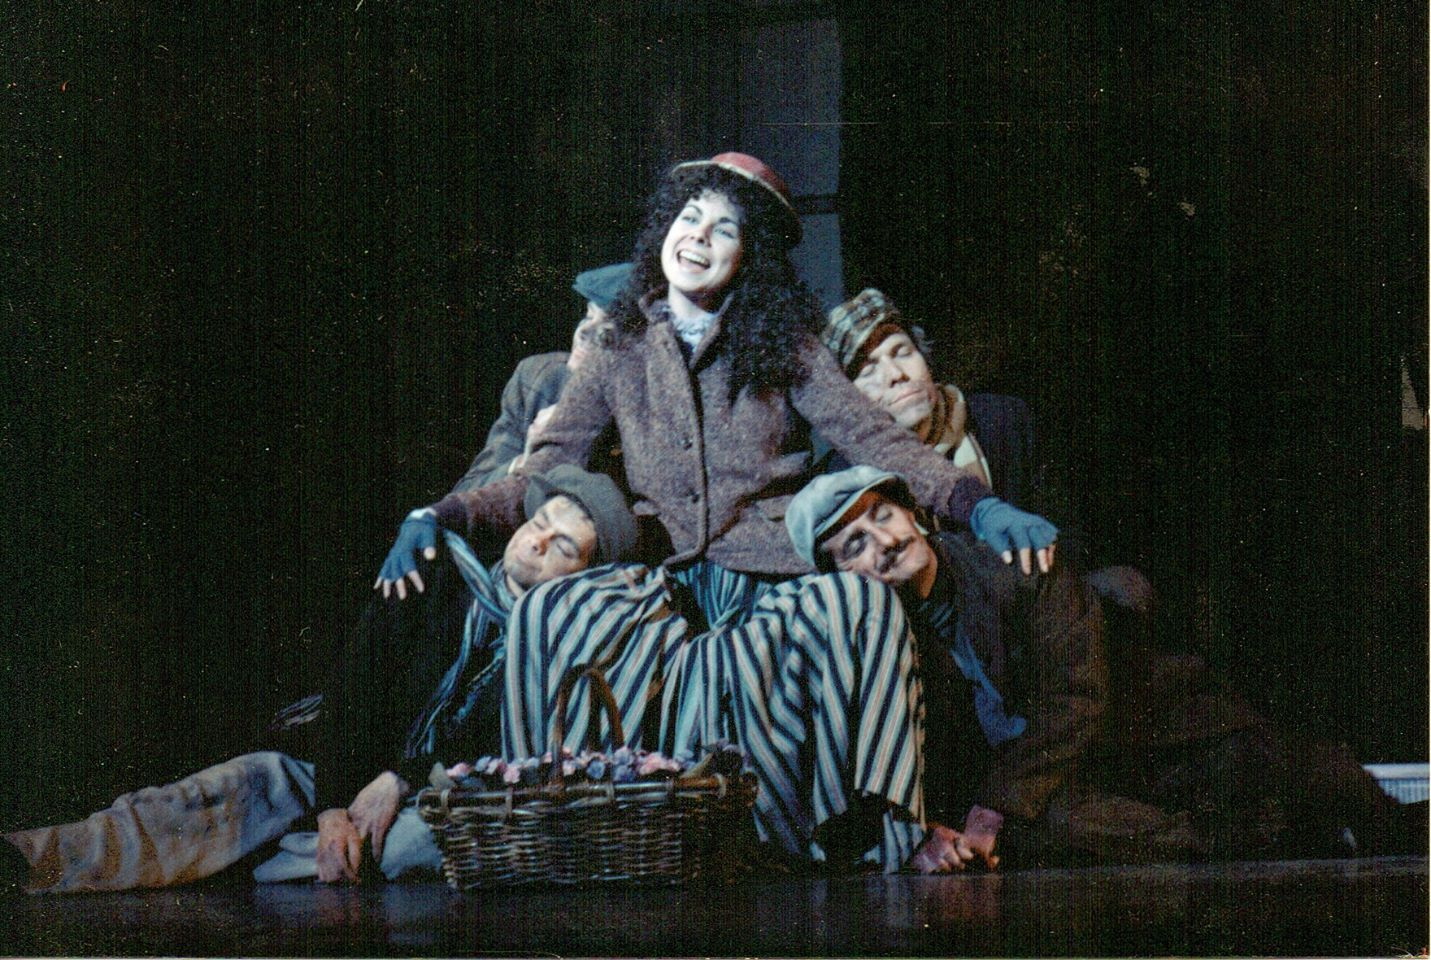 Musical Theatre Arizona 1989 My Fair Lady. Sarah Tattersall with, from left, Doug Durant, Alan Lea, Tony Hodges and Rand Mozingo. (Photo Credit Unknown)